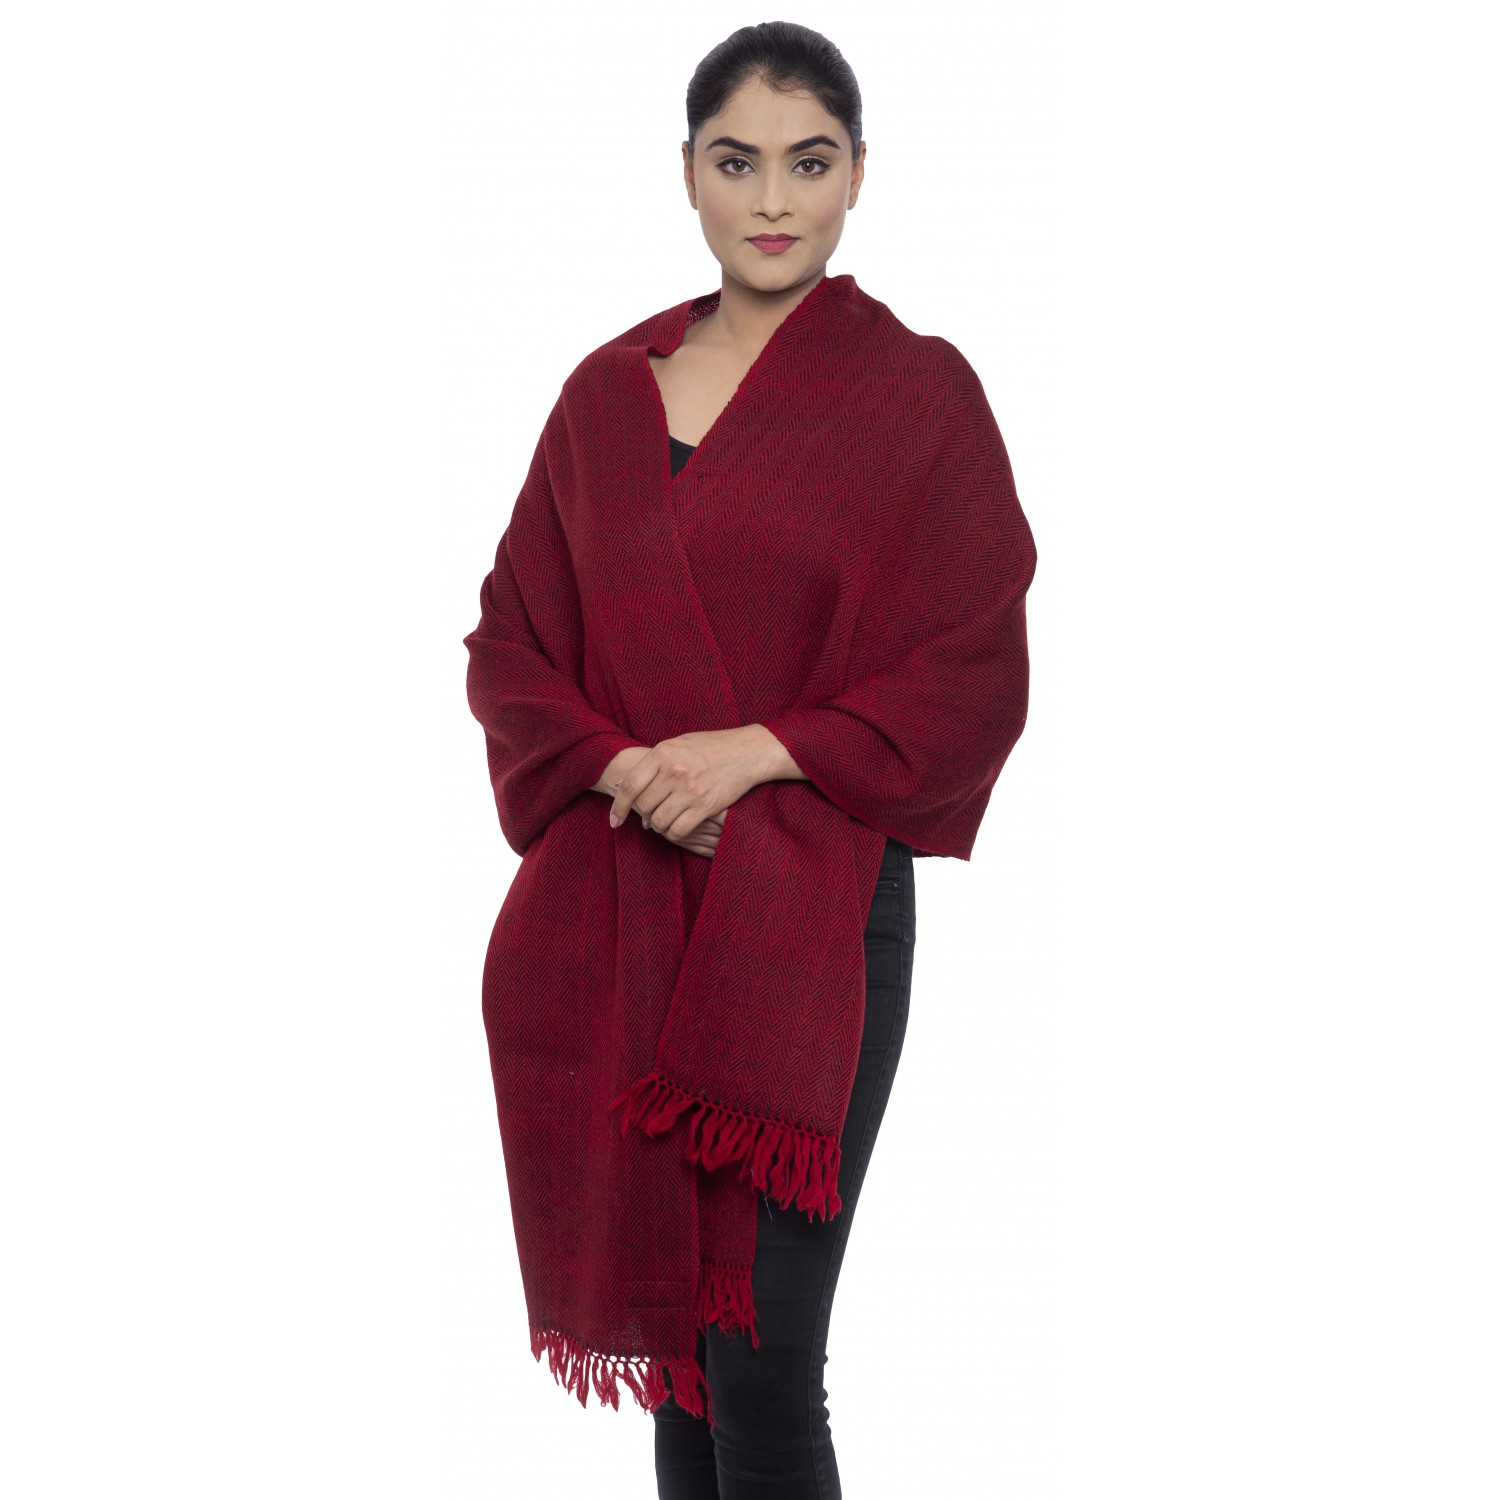 Stole- AO 16 100% Handloom Merino Wool 2/48 Pure Red